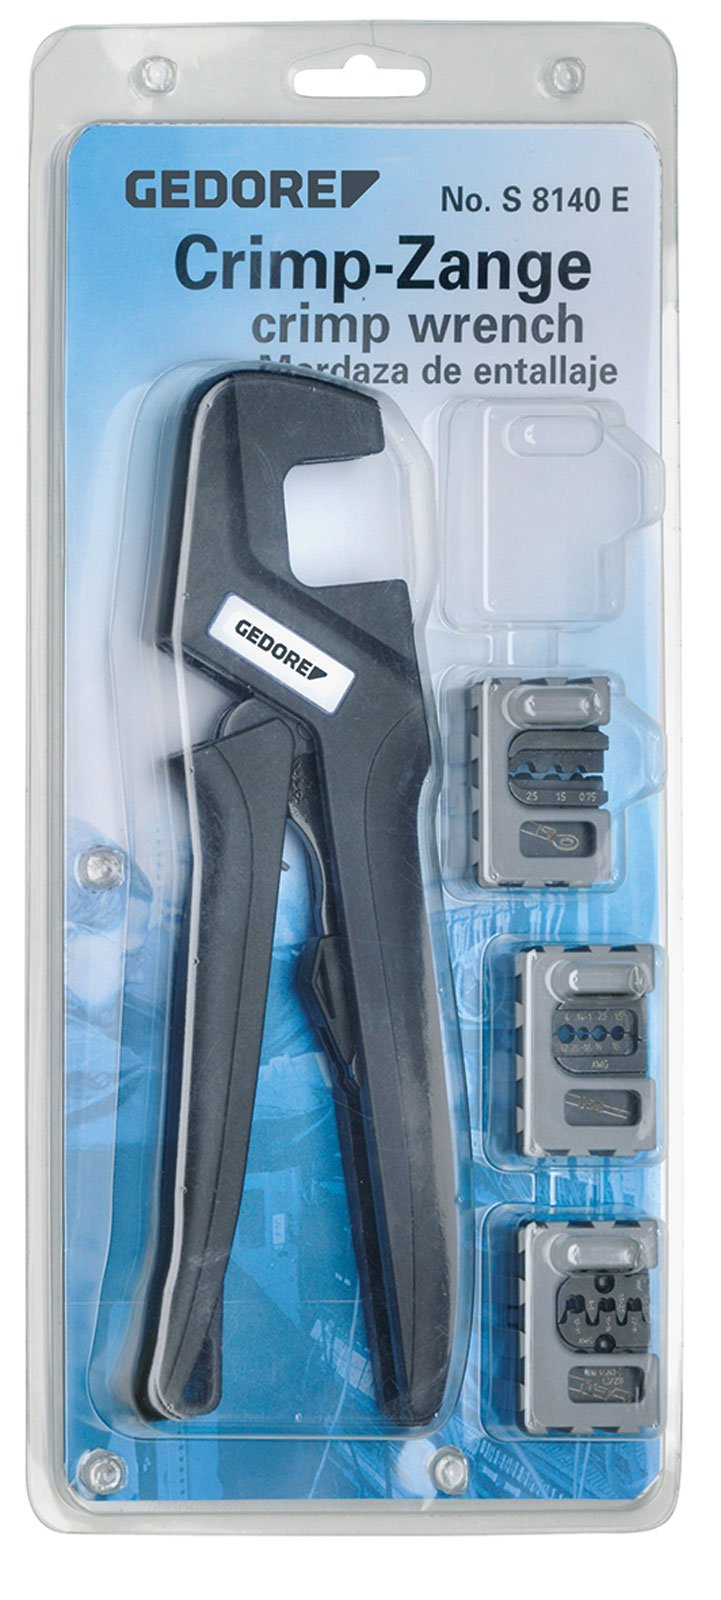 GEDORE 1830929 Crimping Pliers Set Industrial by Gedore